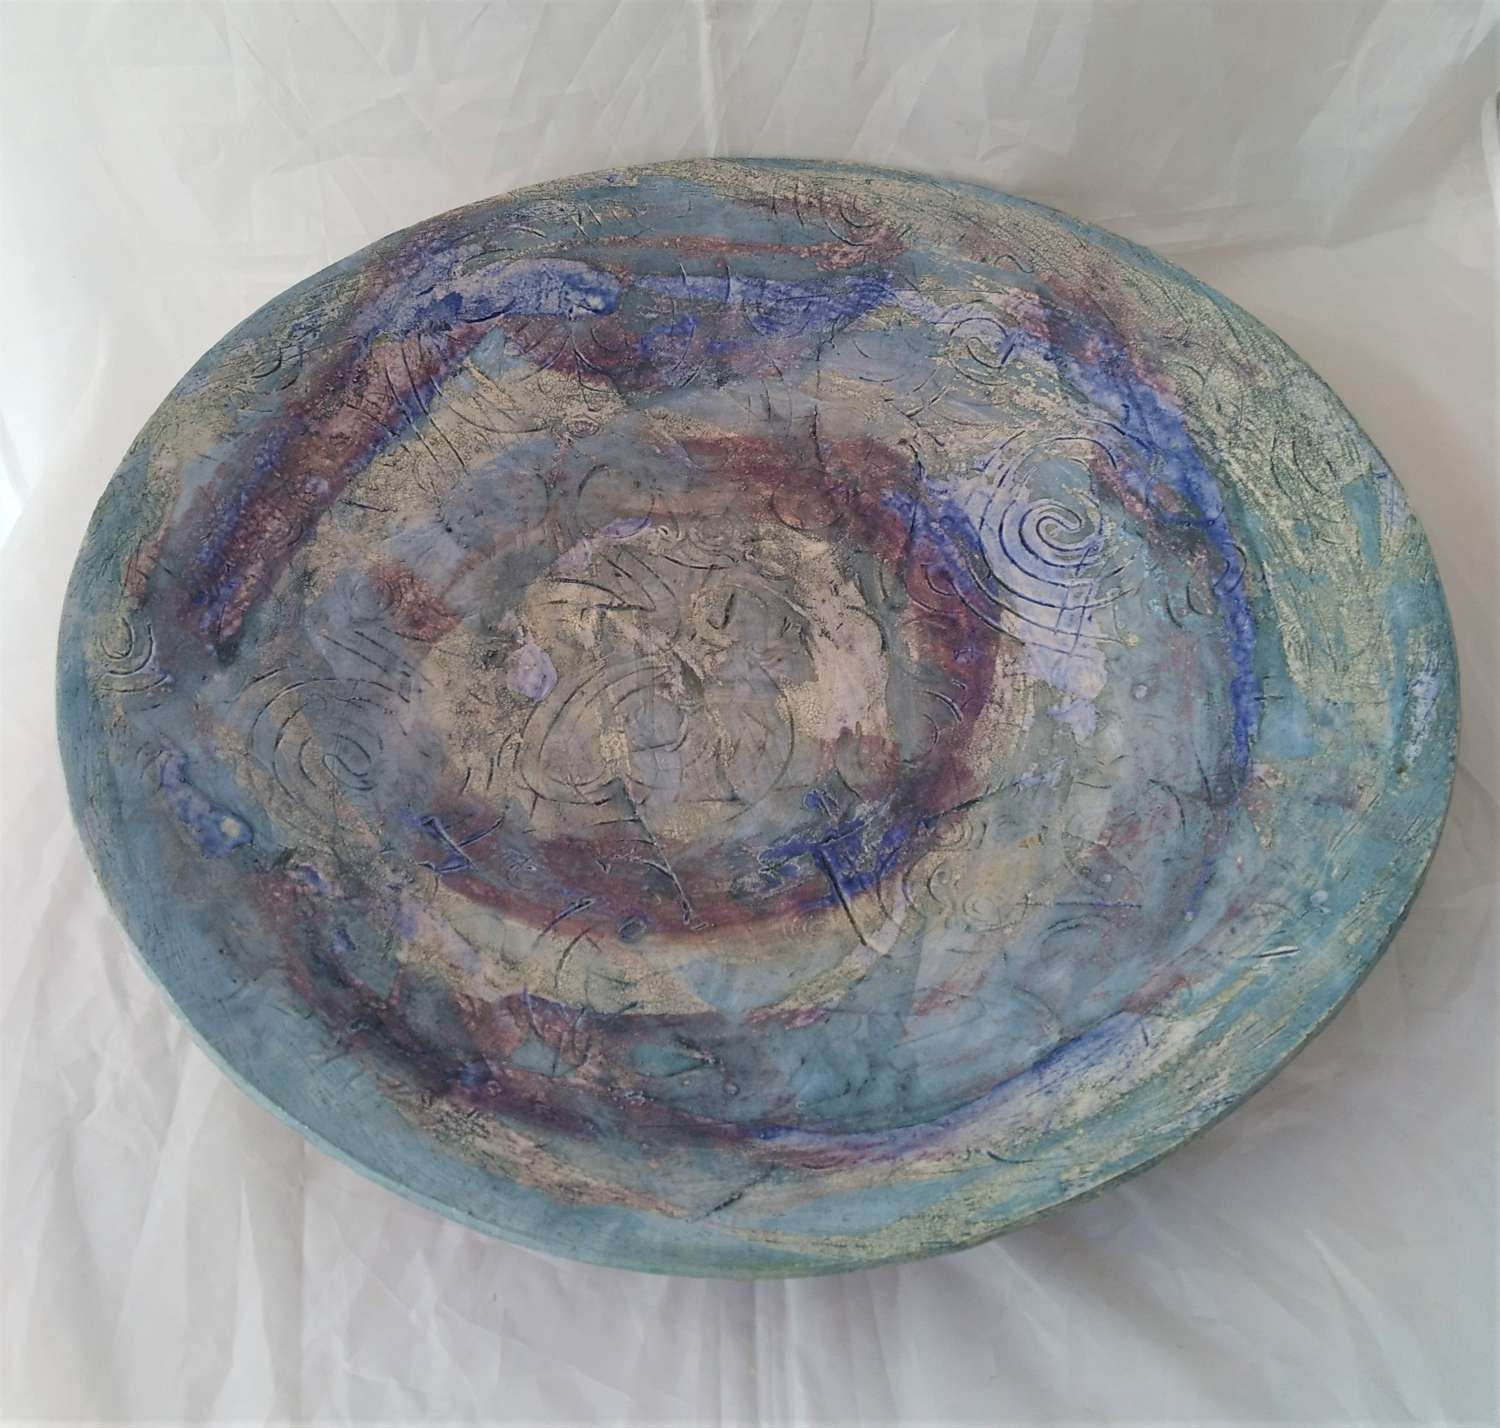 Large contemporary artisan ceramic platter